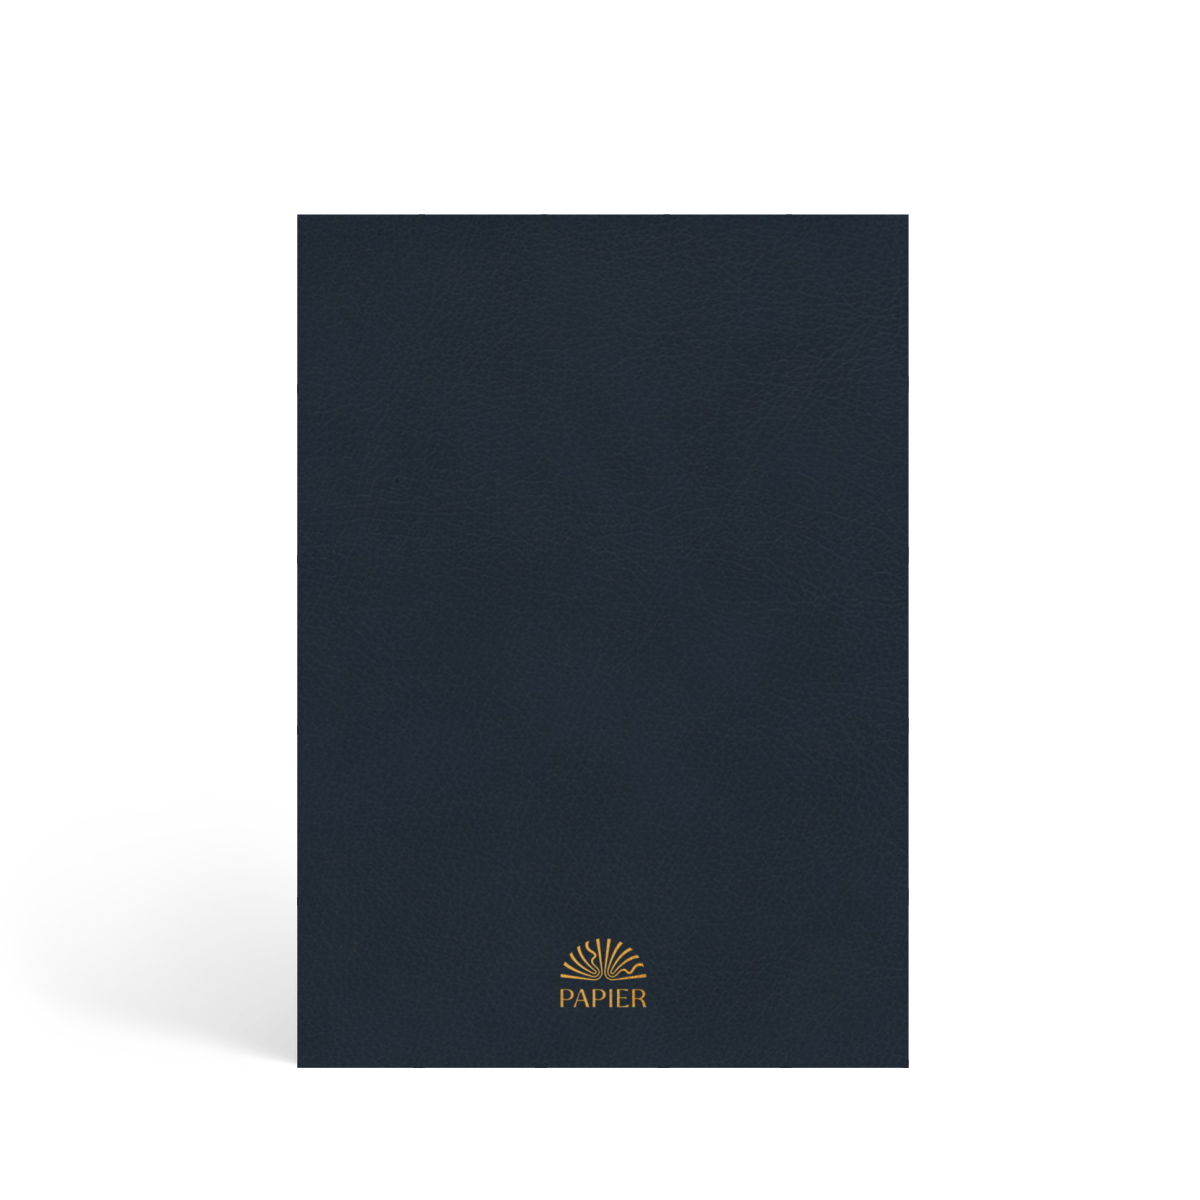 Https%3a%2f%2fwww.papier.com%2fproduct image%2f95542%2f5%2fnavy monogram 23953 back 1573495927.png?ixlib=rb 1.1